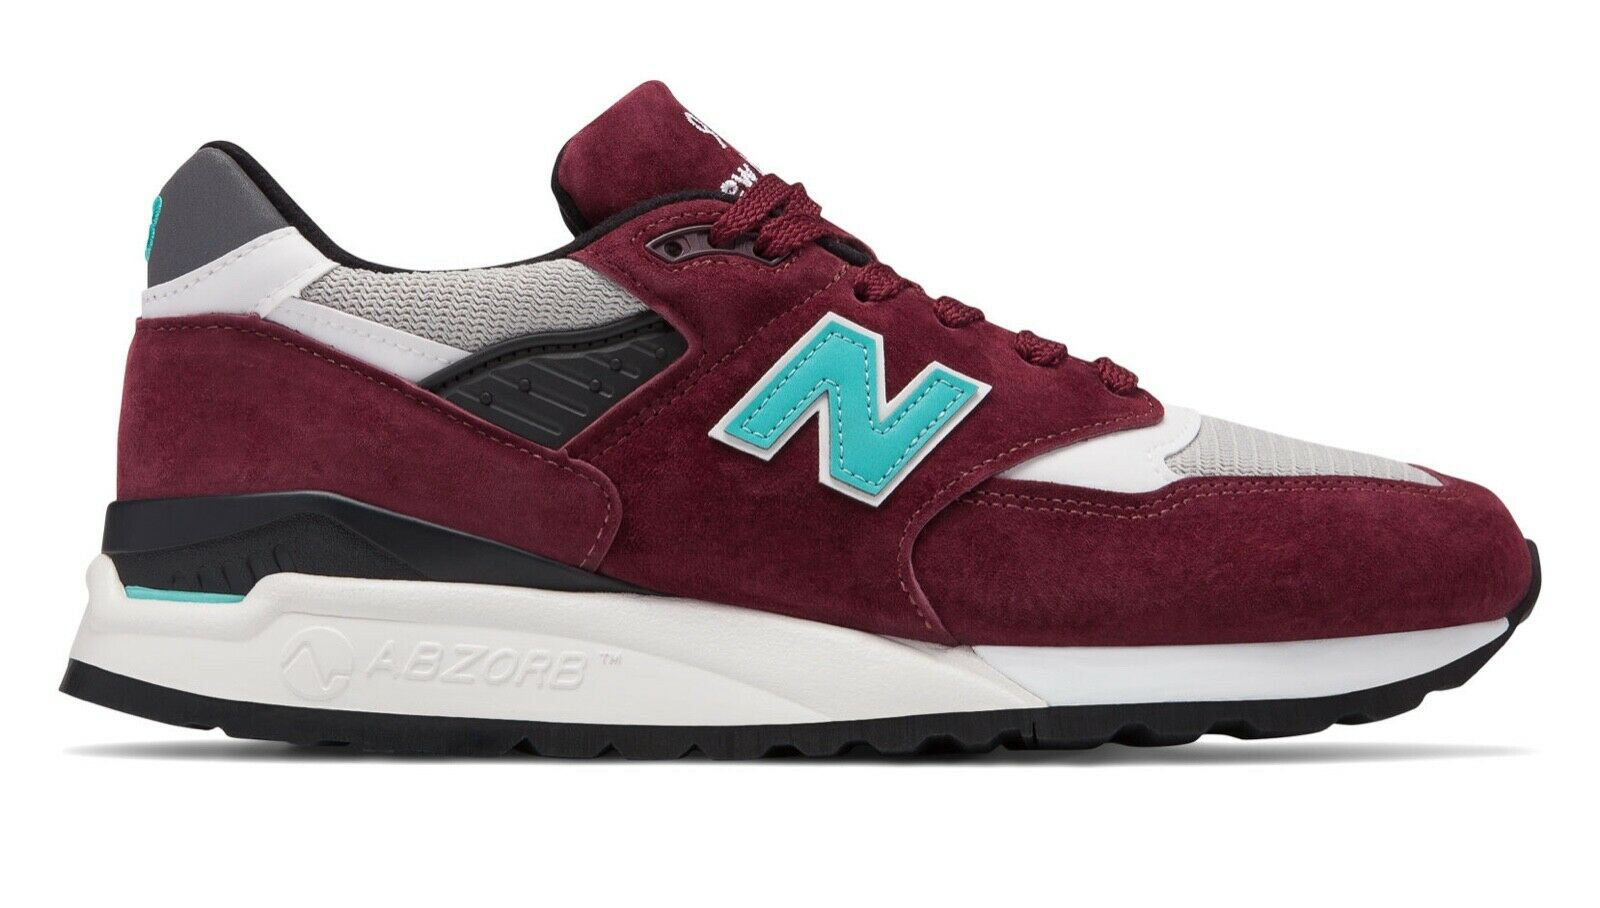 New Balance Men's 998 Made in USA Lifestyle shoes M998AWC Burgundy with bluee